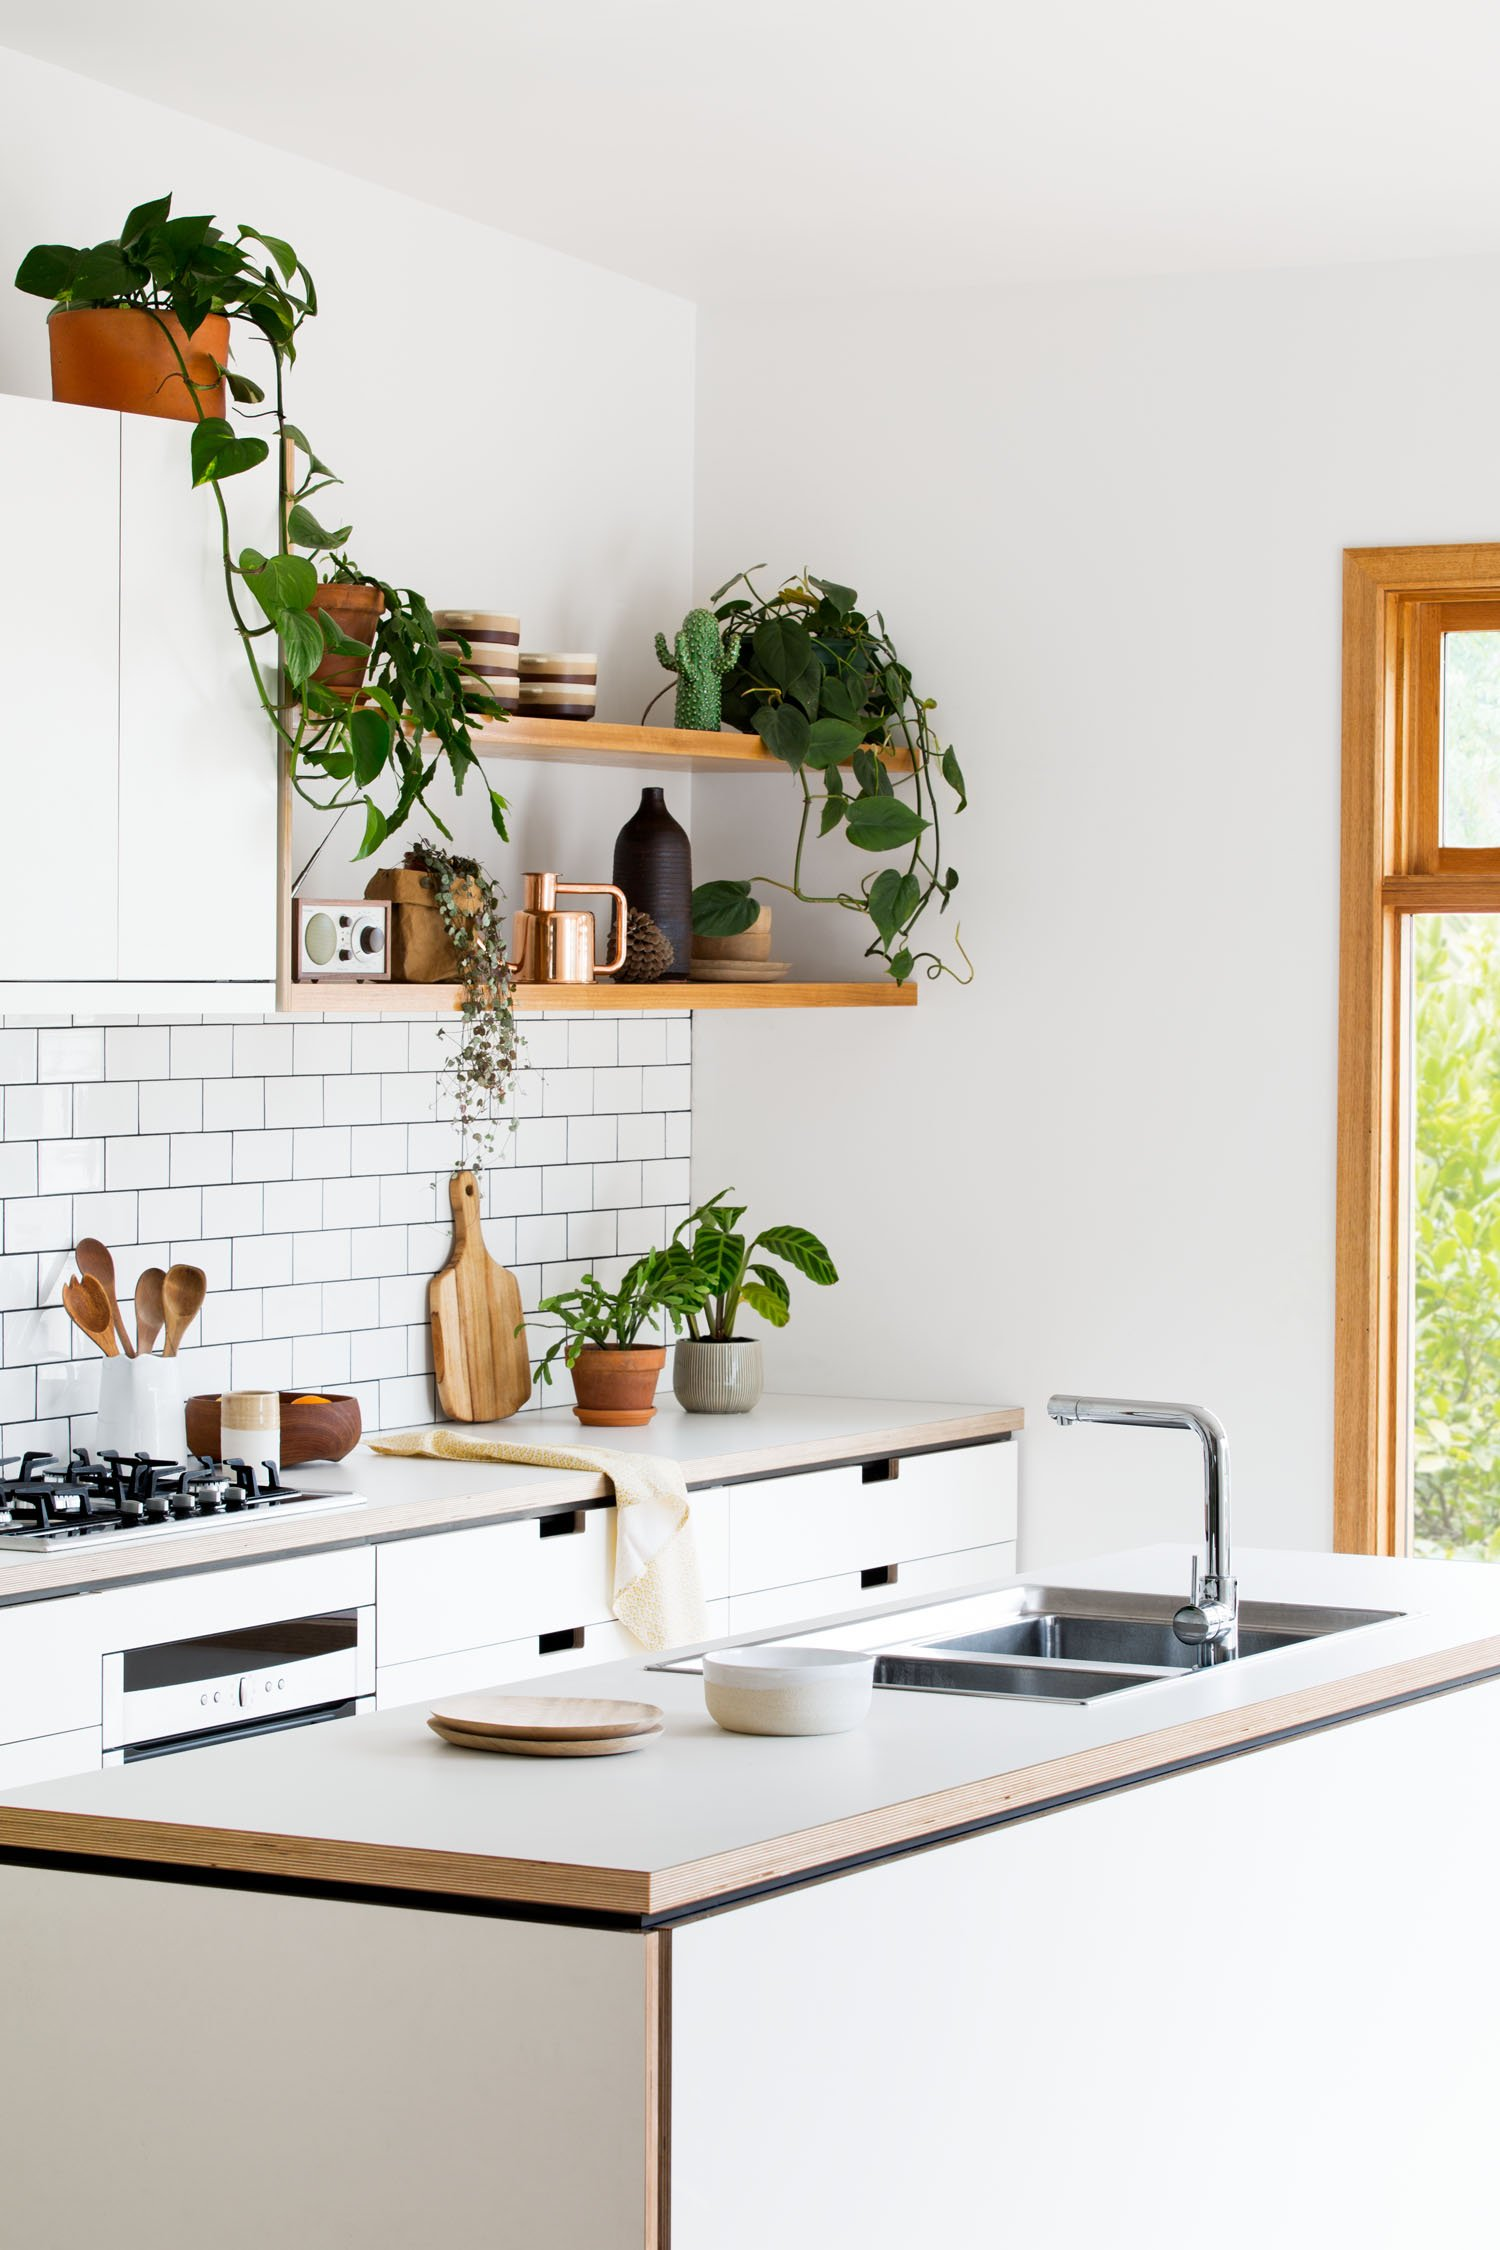 2 // Bring Nature Inside With Plants And Green To Brighten Up Your Kitchen.  Large Leafy Greenery And Hanging Plants Are Perfect, But If You Want  Something ...